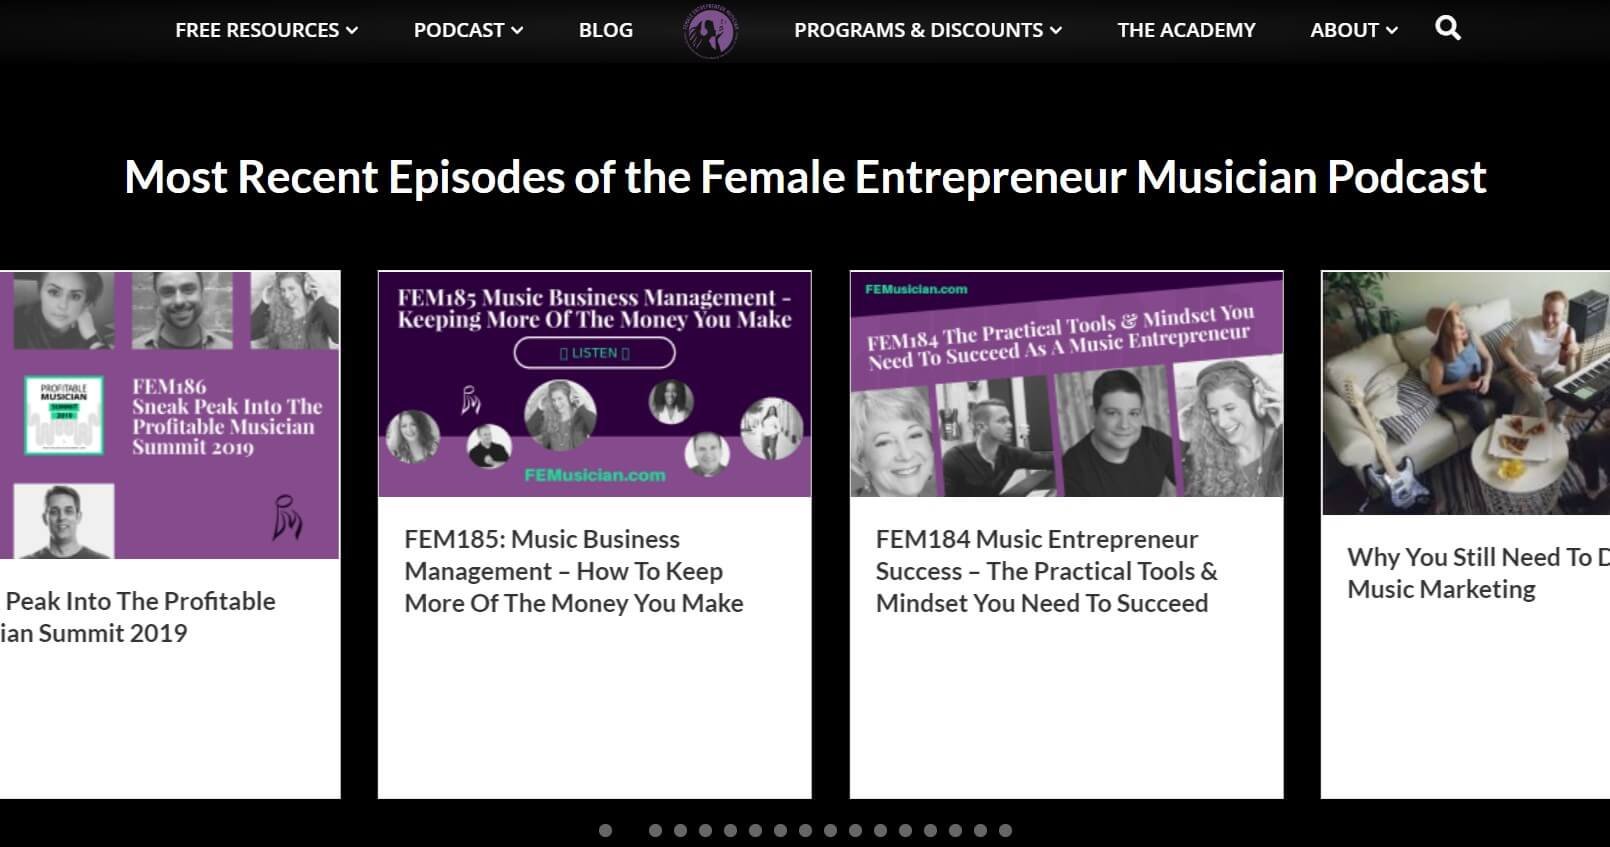 Career in music for women: FeMusician